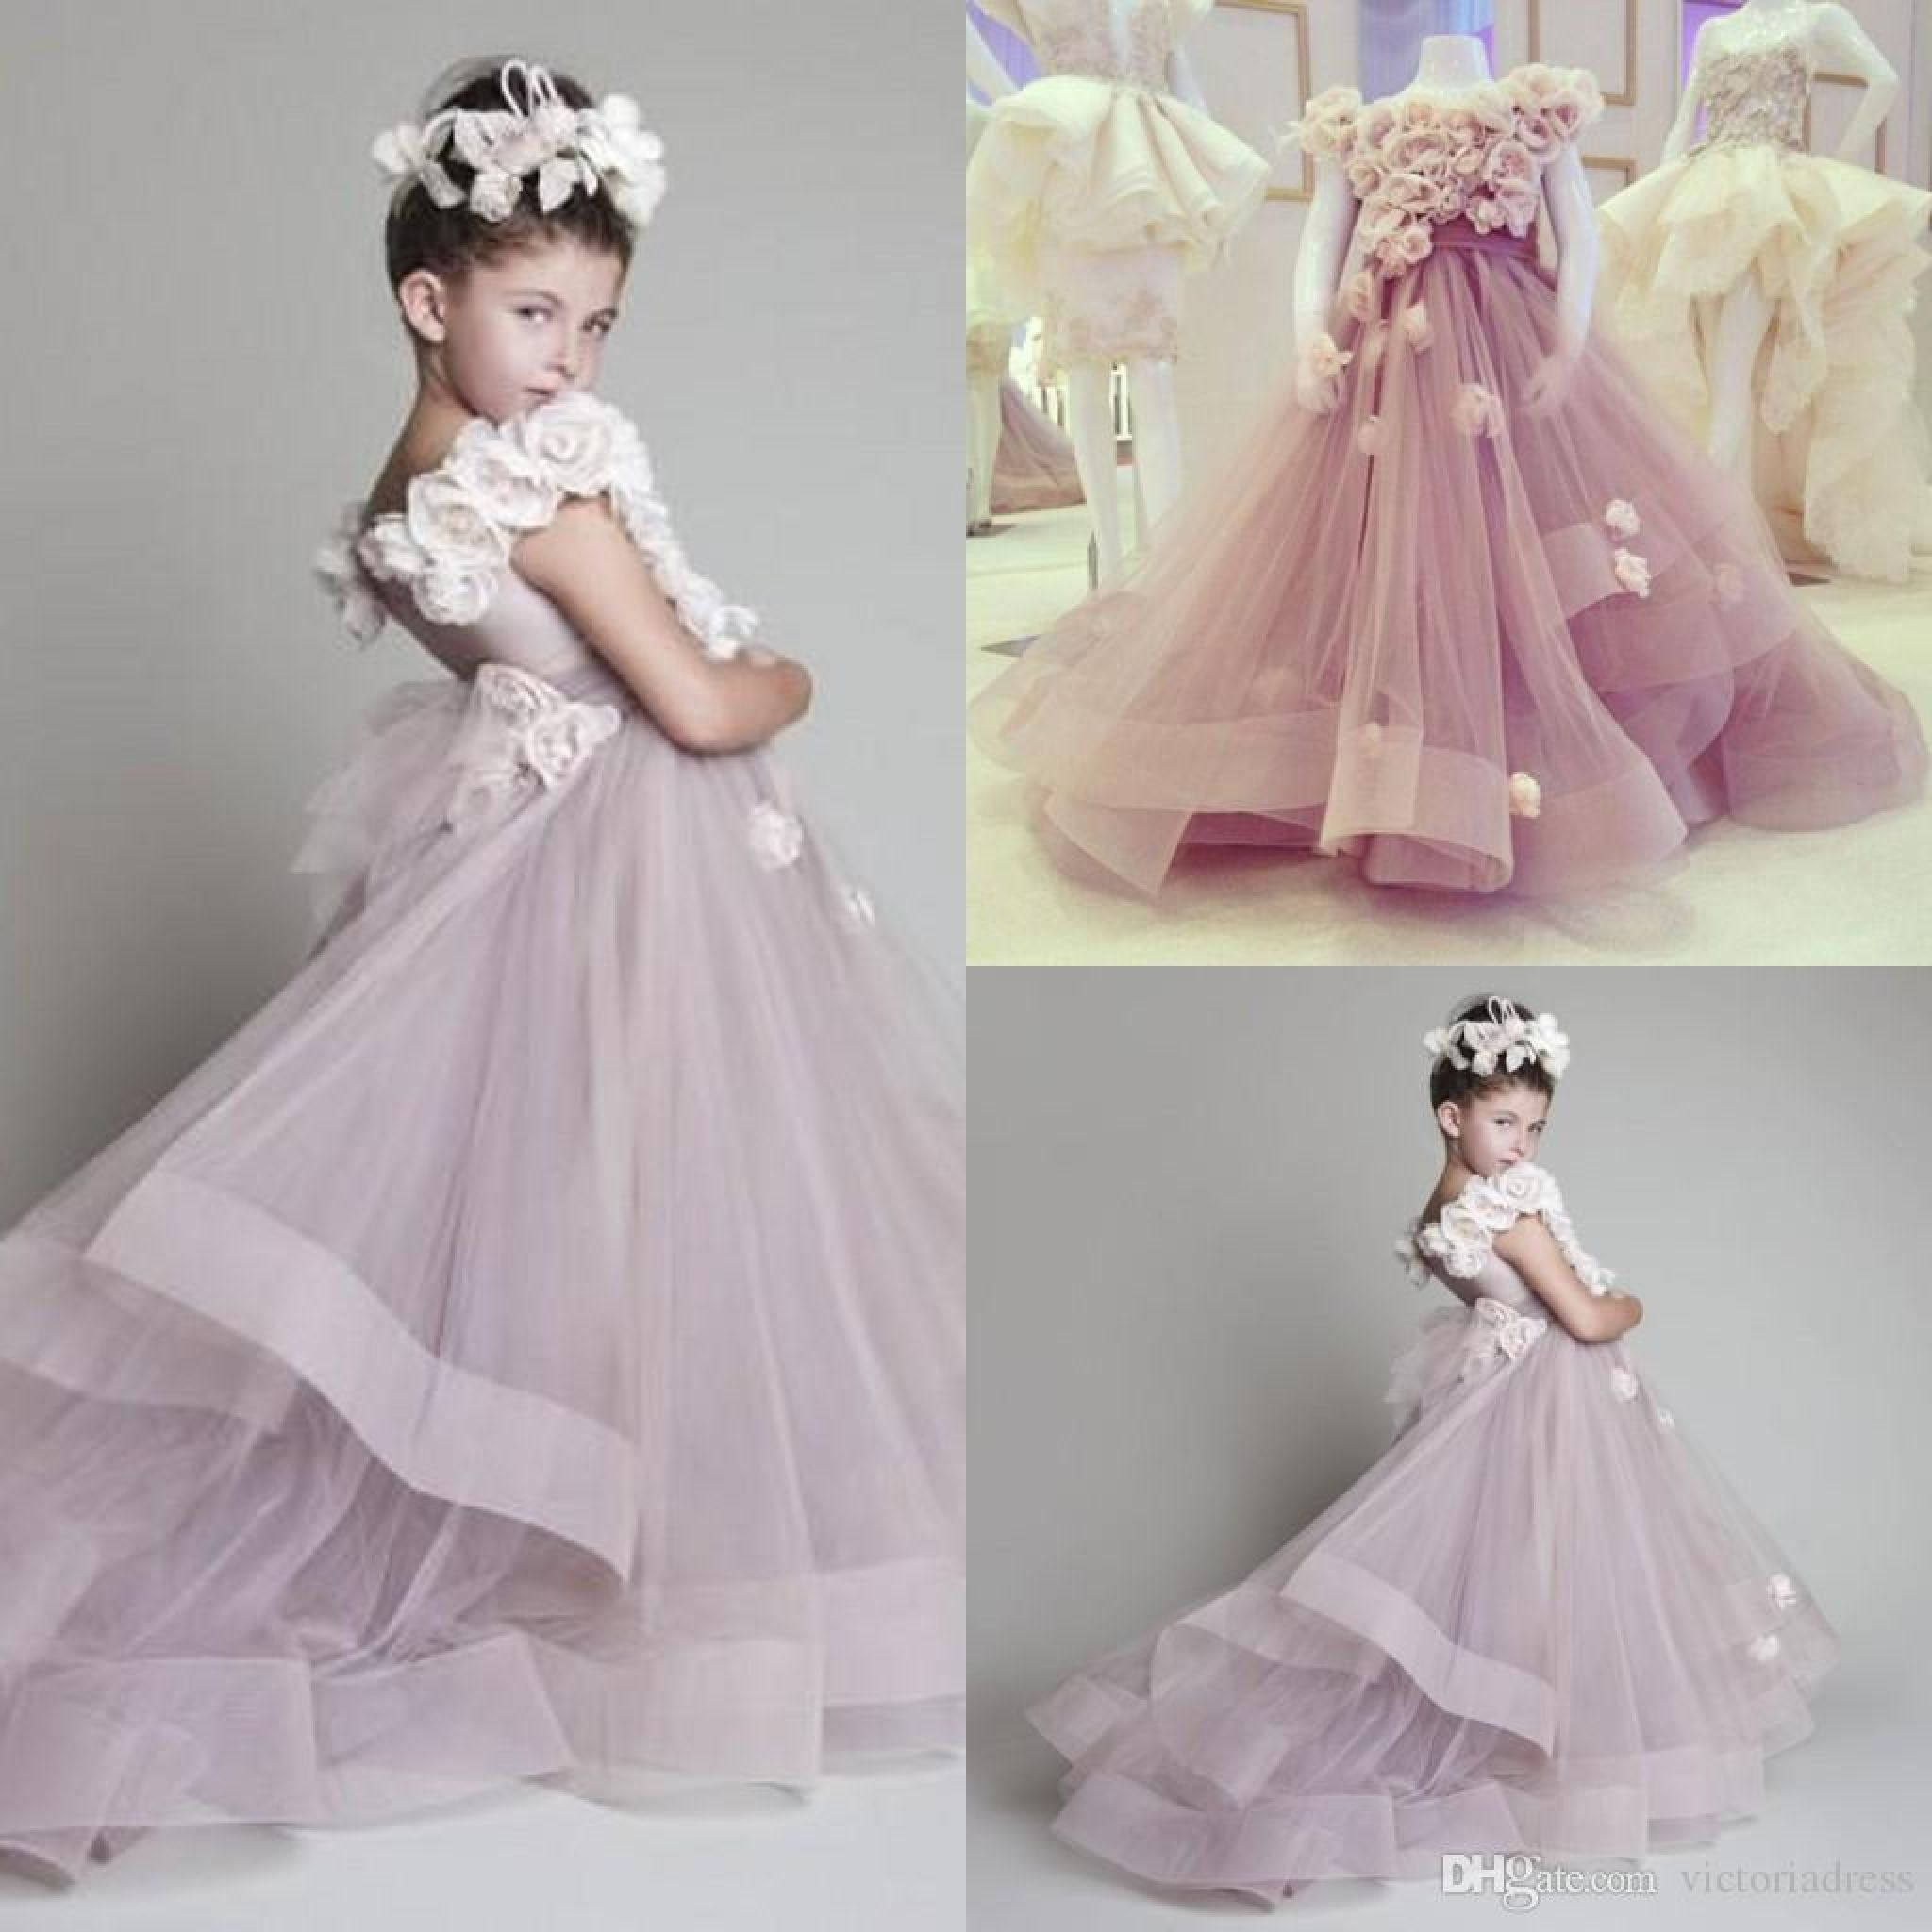 Toddler girl wedding dress plus size dresses for wedding guest